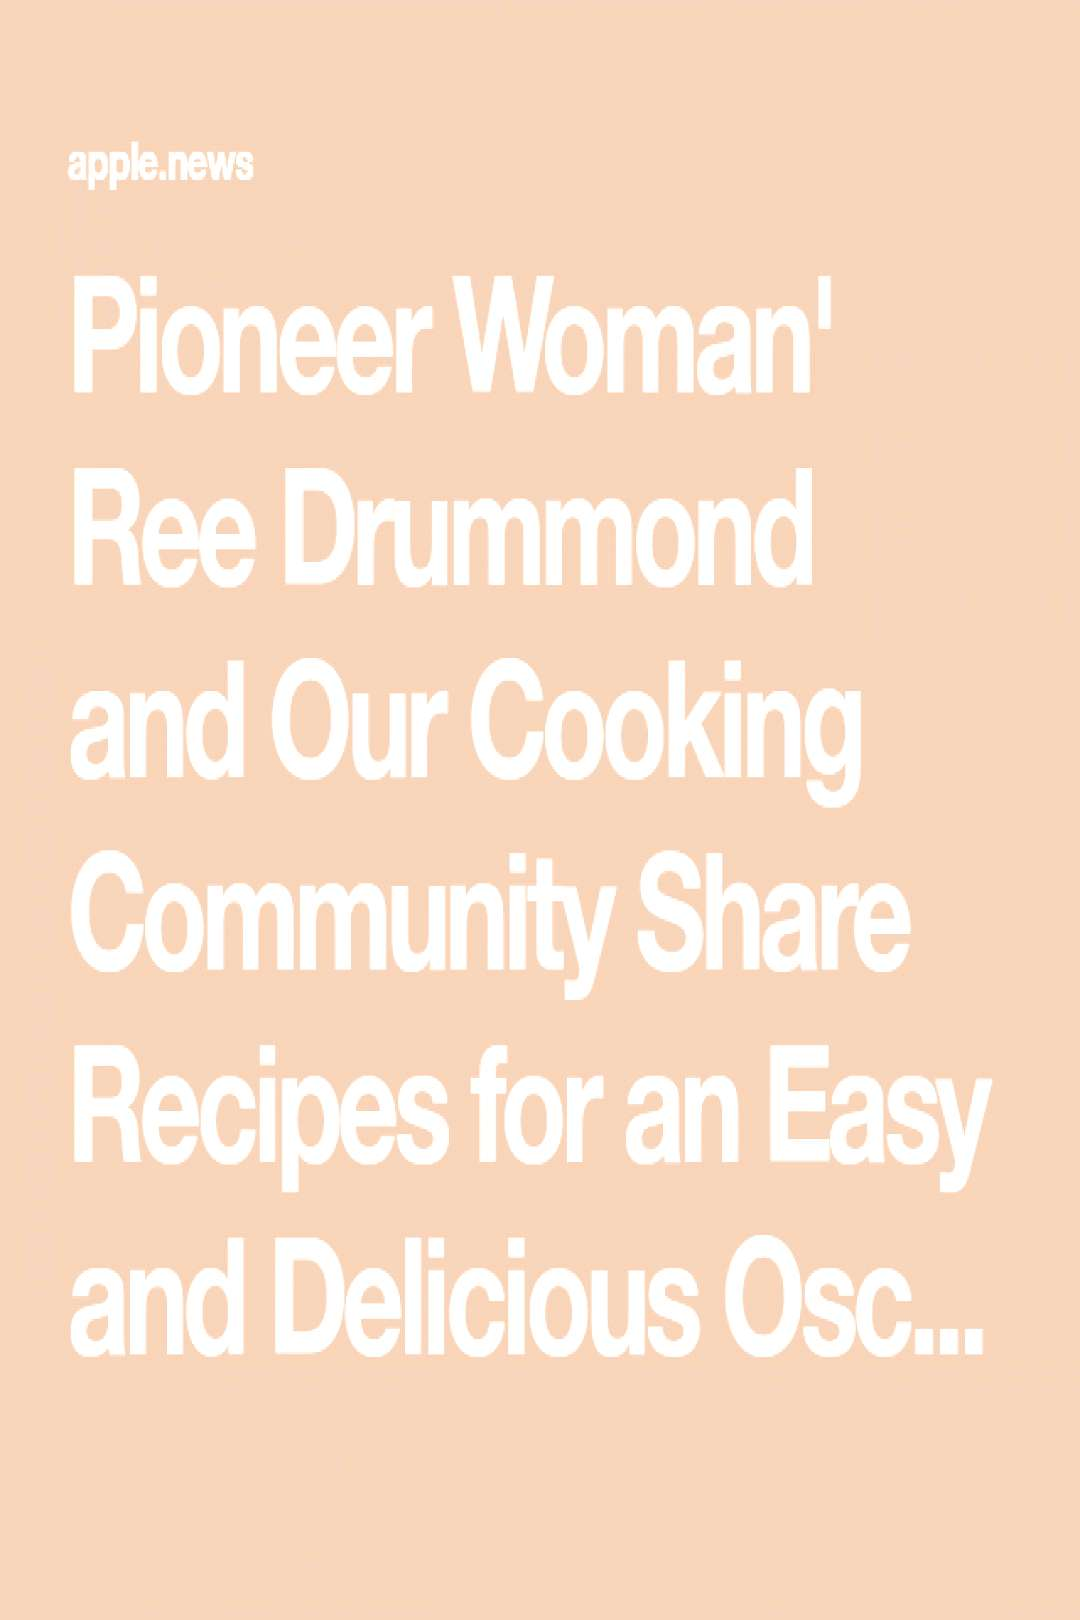 Pioneer Woman 'Ree Drummond and our cooking community share recipes for a simple and delicious Osca